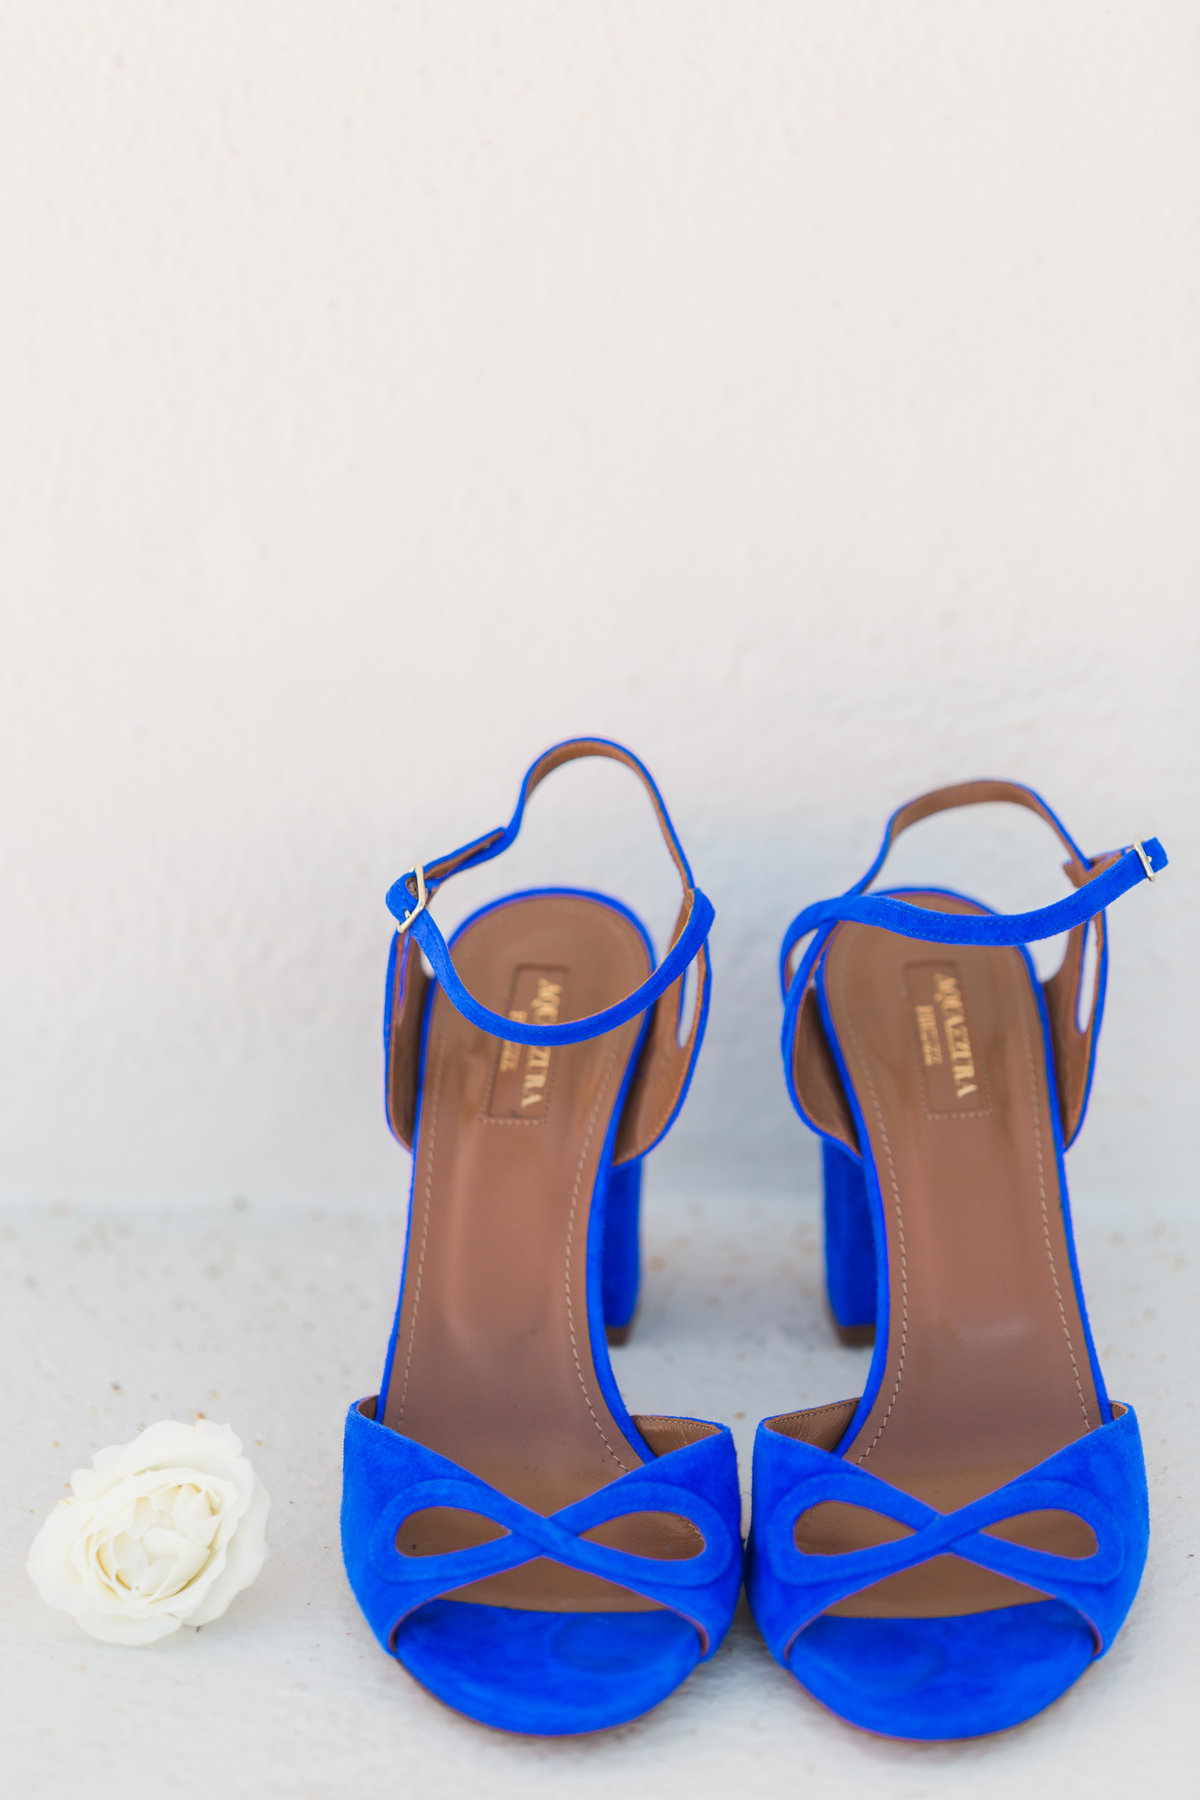 Carmel_Seaside_Chic_Wedding_Valorie_Darling_Photography - 19 of 134